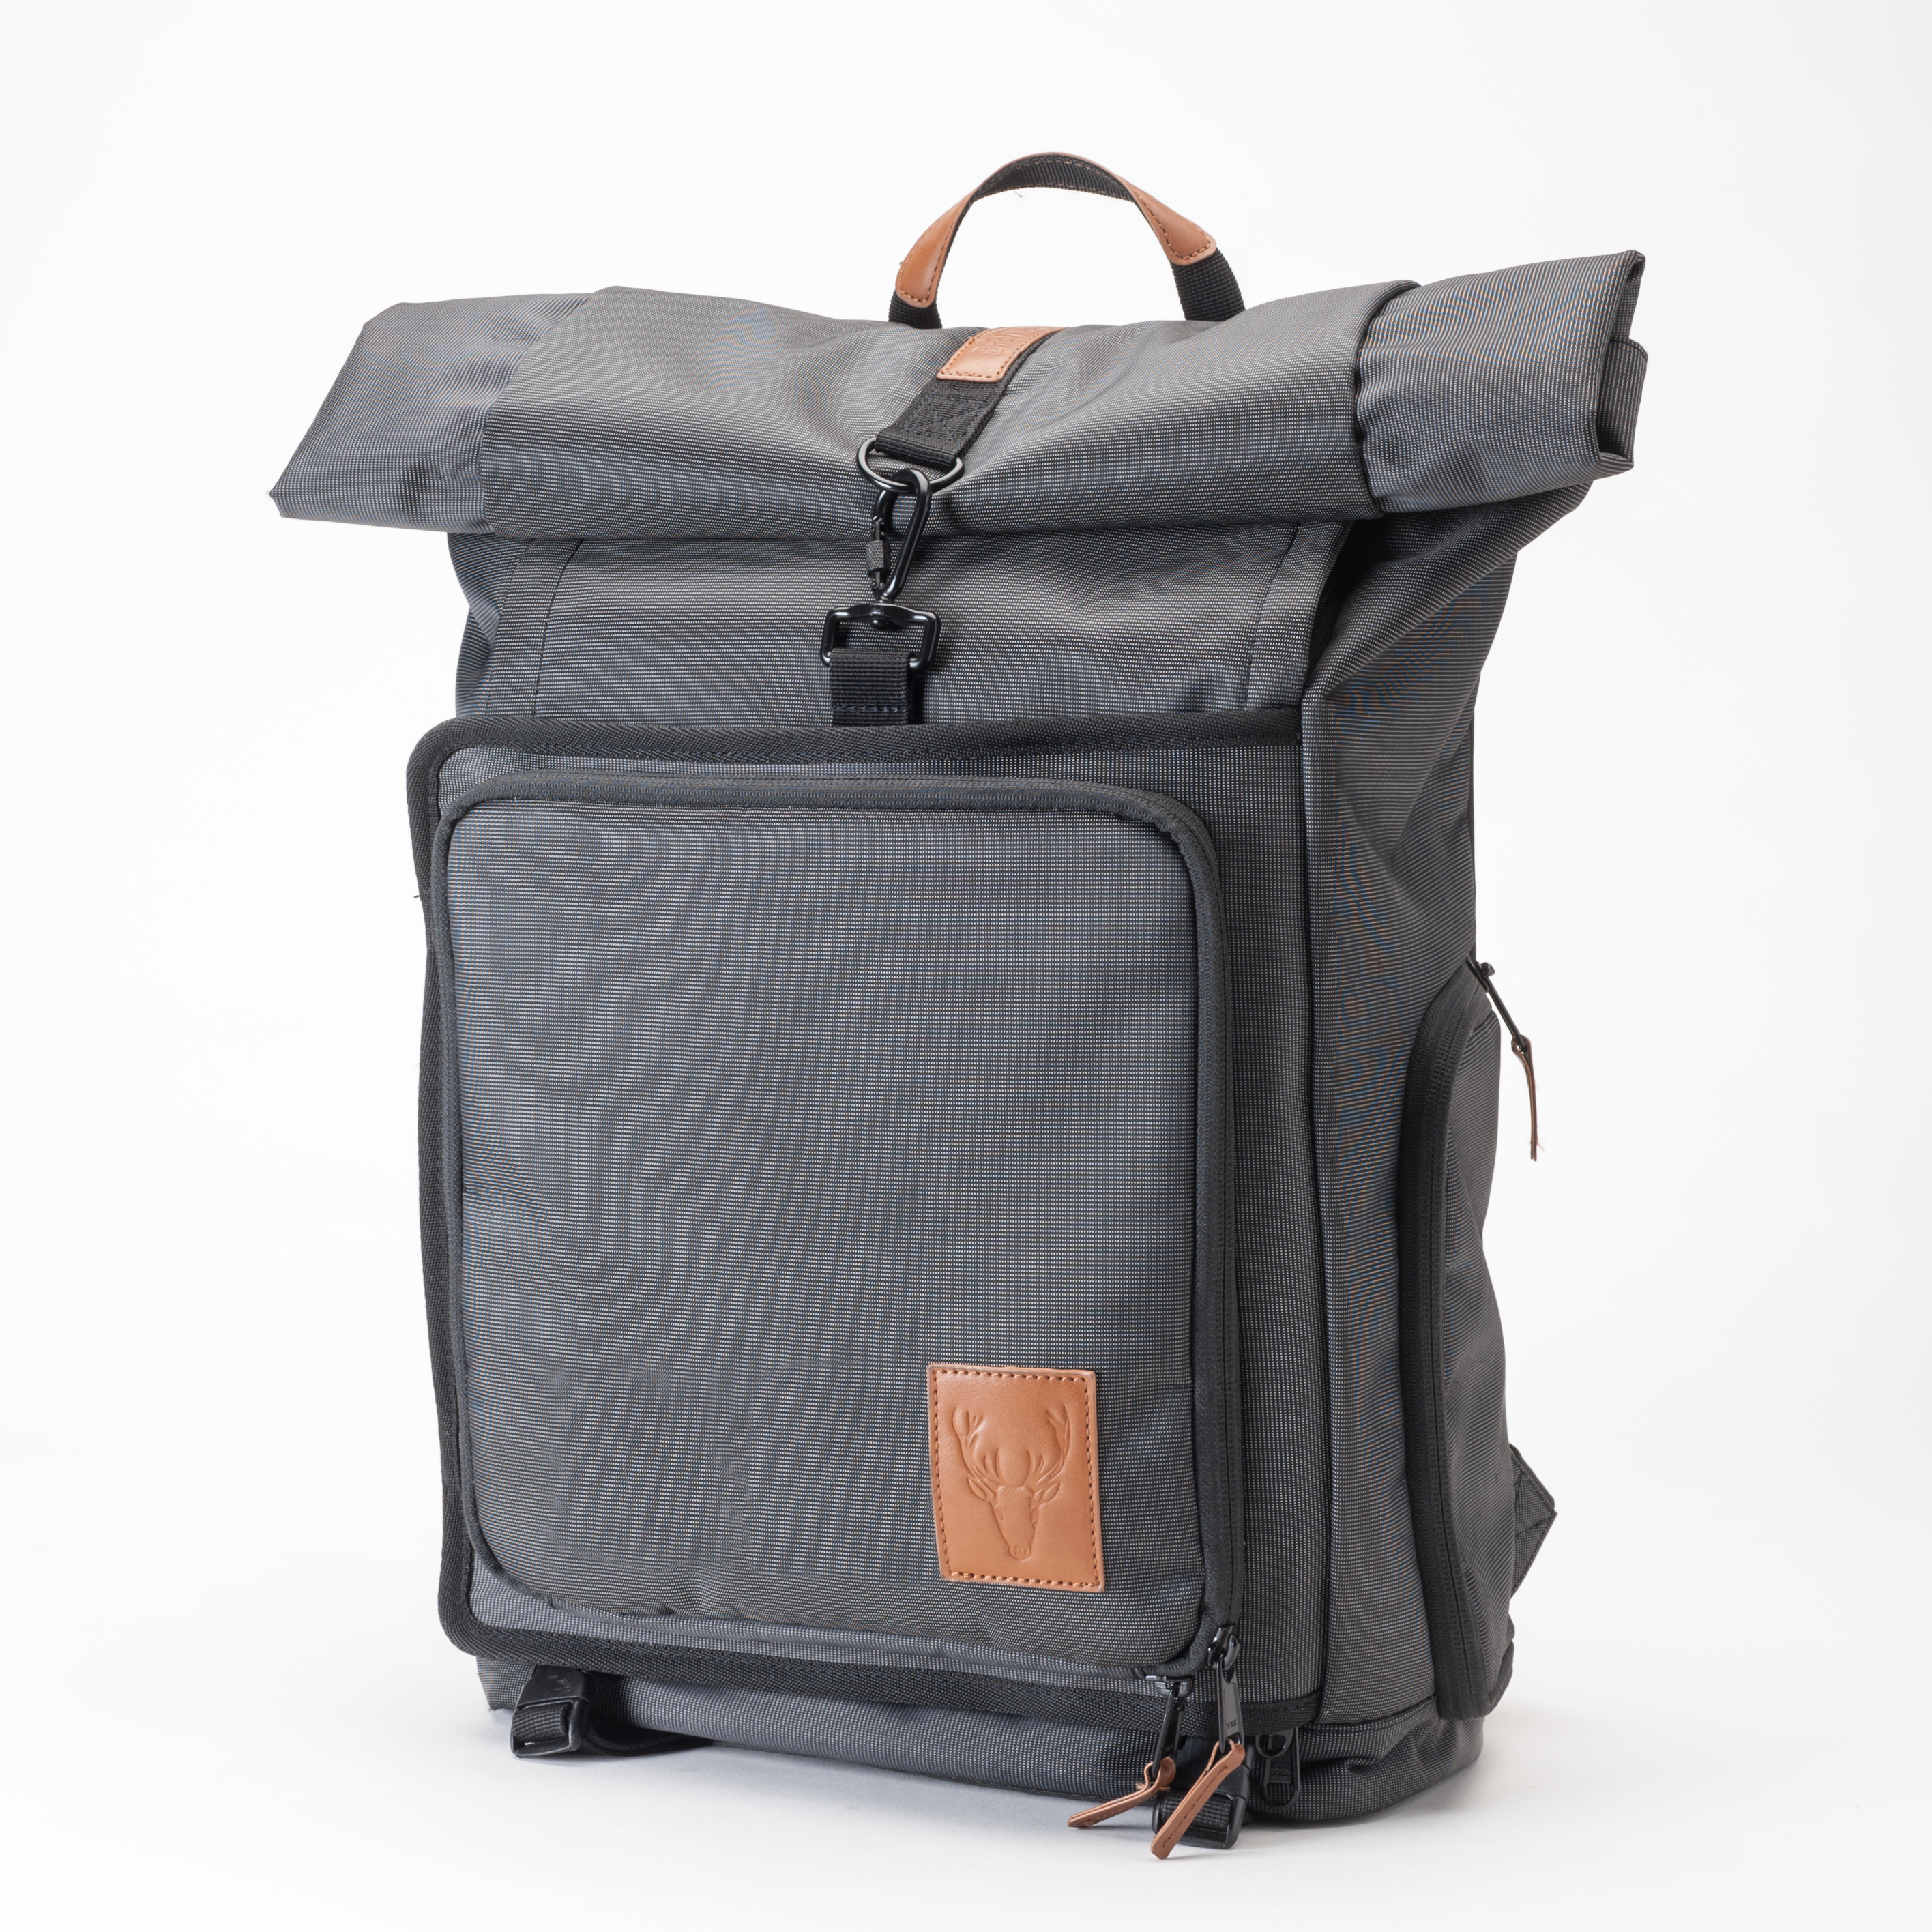 Brevite launches two new Incognito camera backpacks: Digital ...